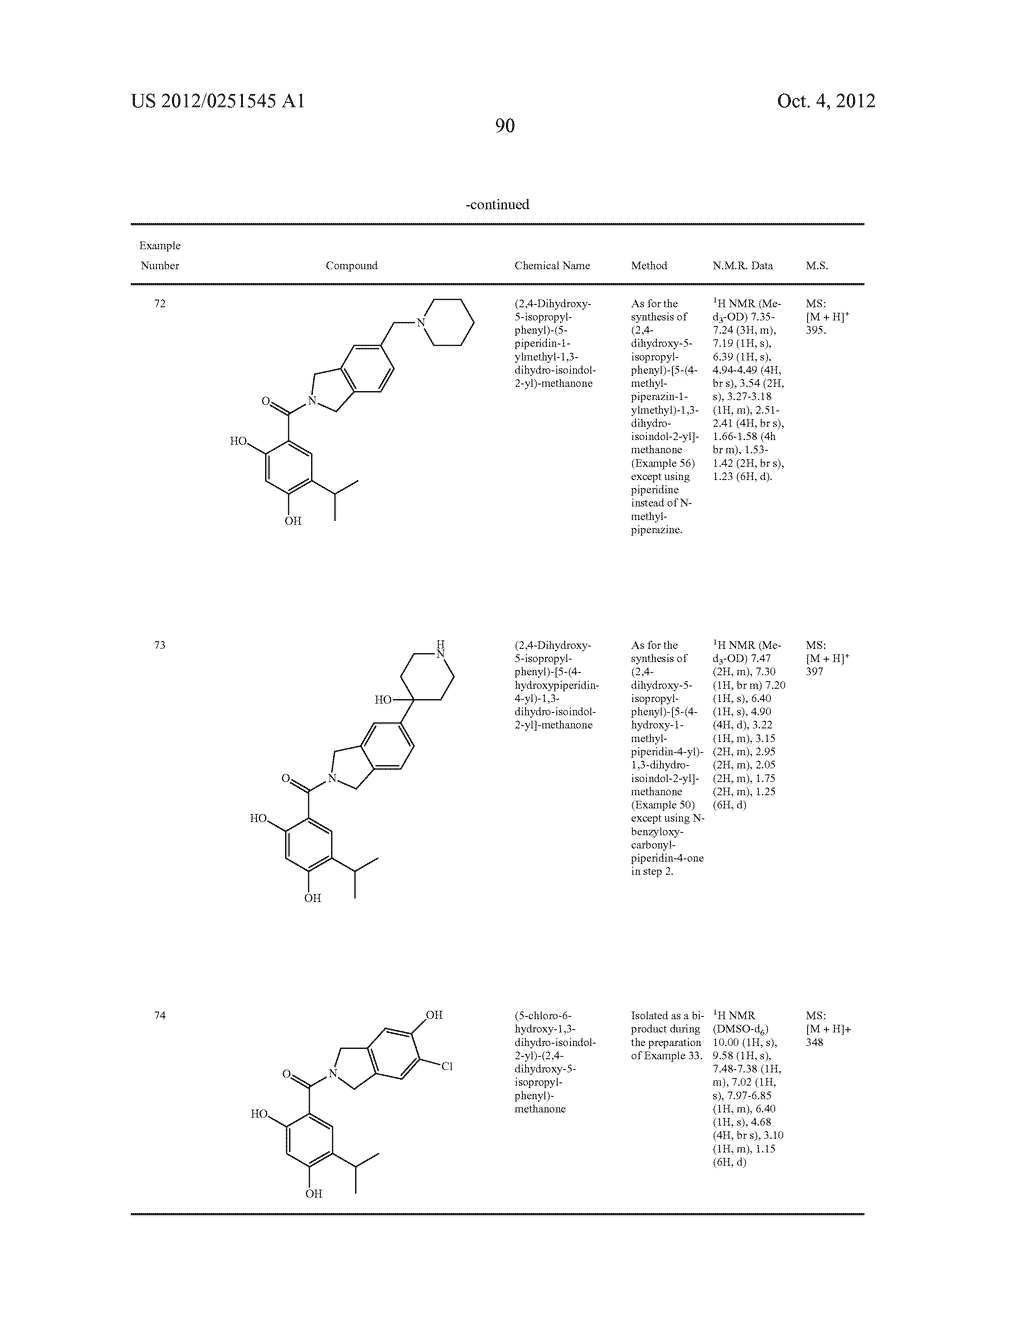 Therapeutic Combinations Of Hydroxybenzamide Derivatives As Inhibitors Of     HSP90 - diagram, schematic, and image 91